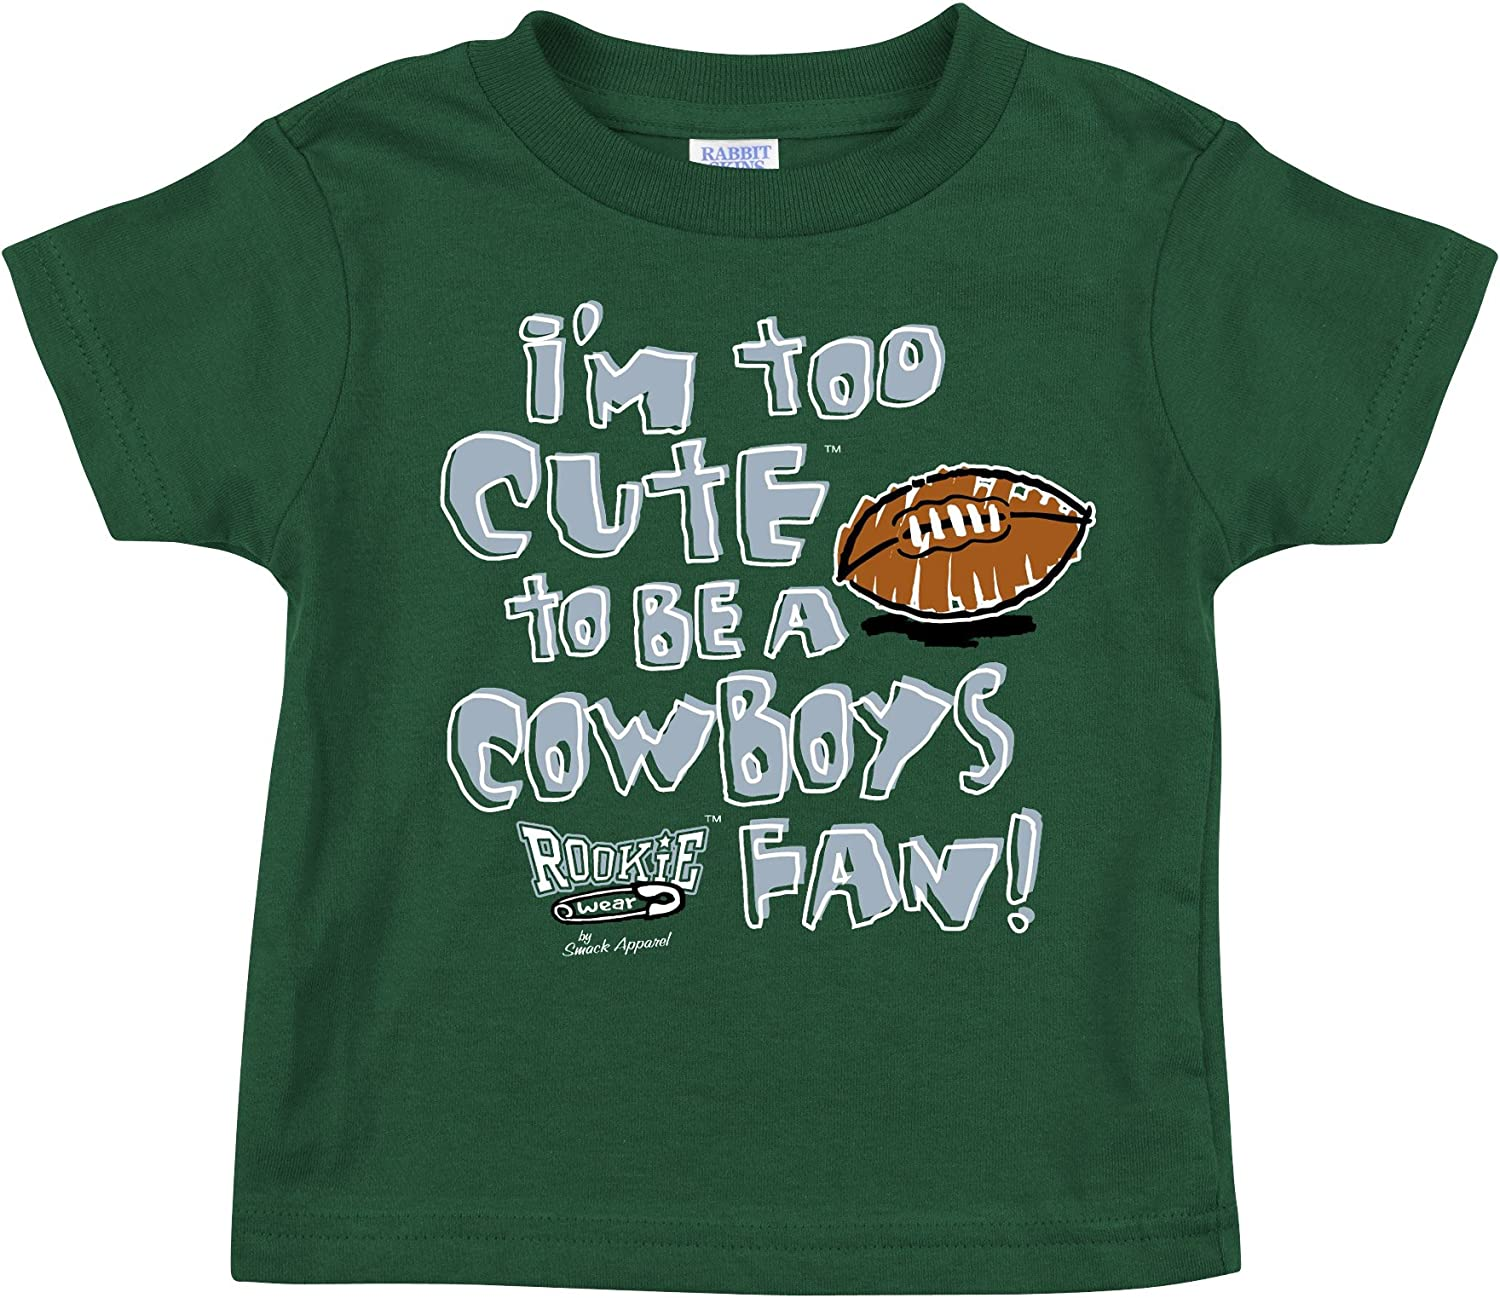 Smack Apparel Philadelphia Eagles Fans. Too Cute. Onesie (NB-18M) or Toddler Tee (2T-4T)